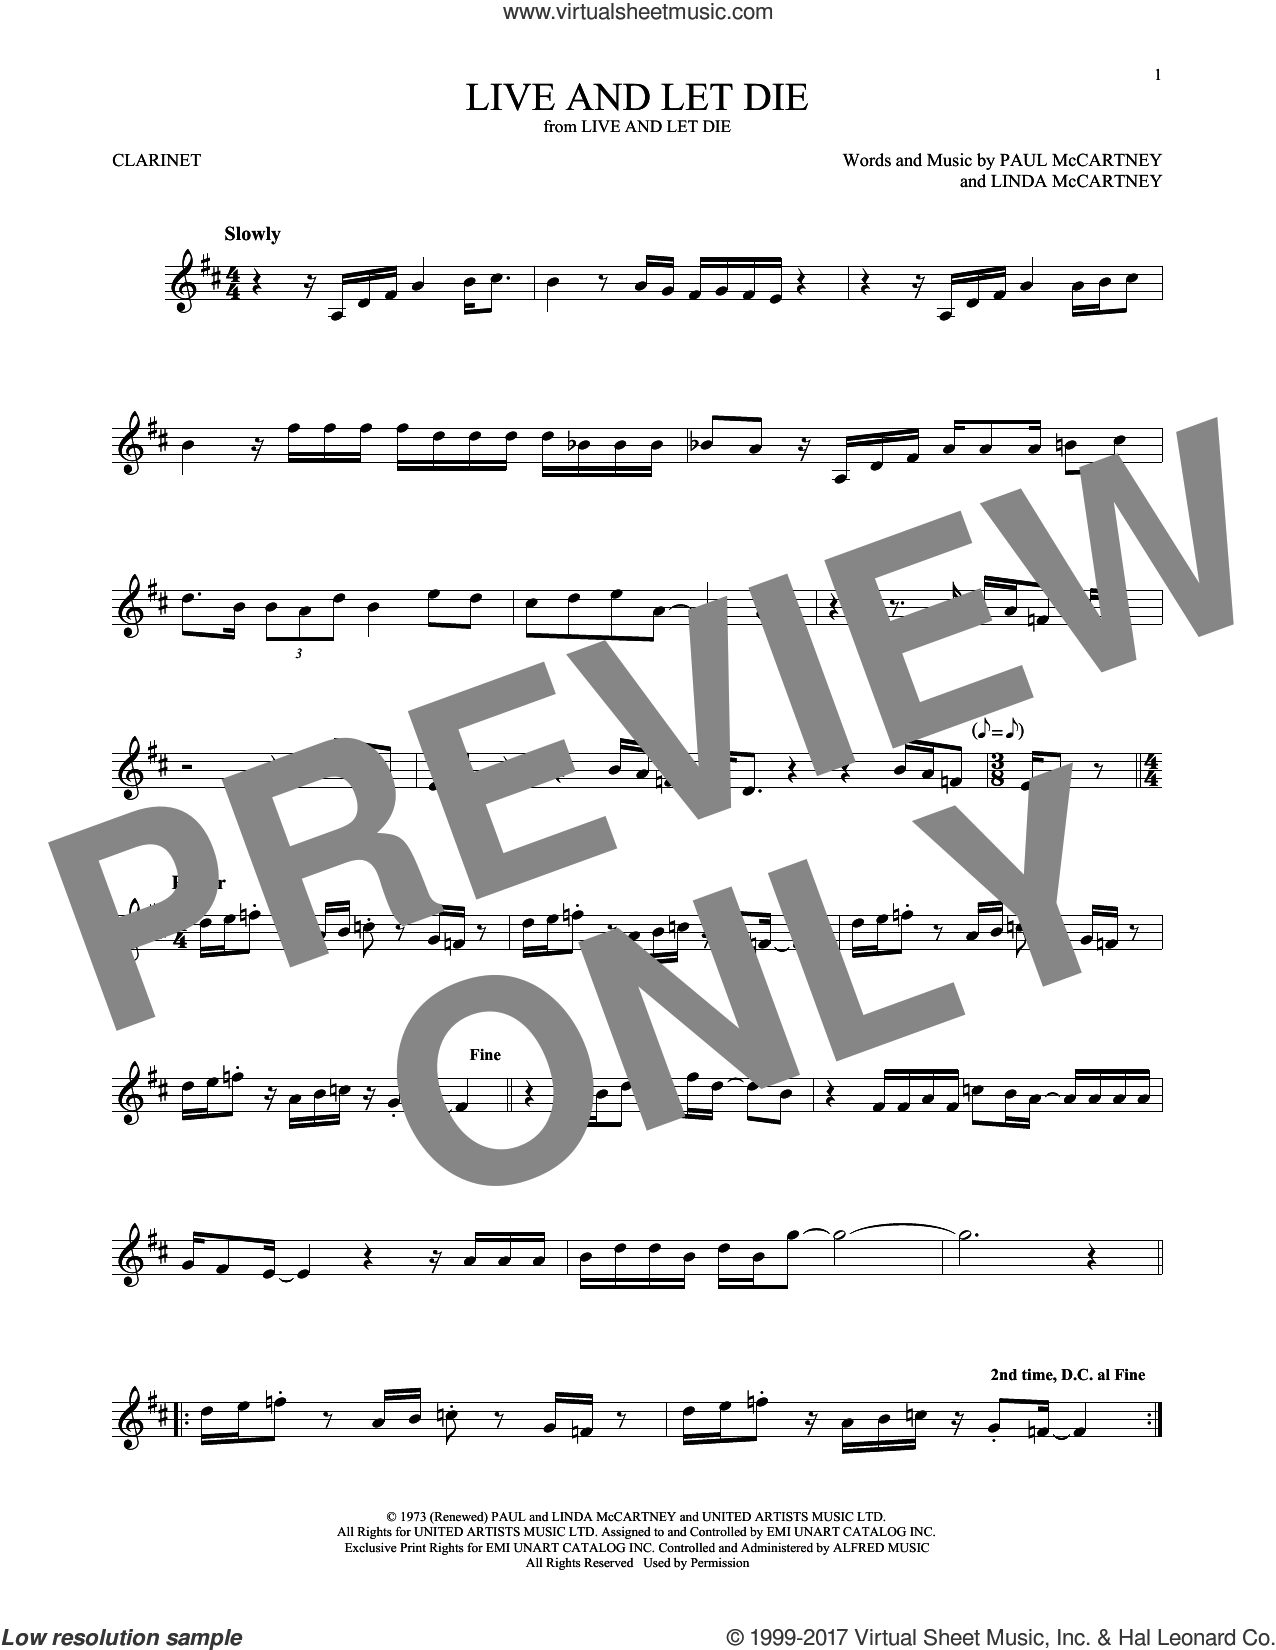 Live And Let Die sheet music for clarinet solo by Wings, Linda McCartney and Paul McCartney, intermediate skill level